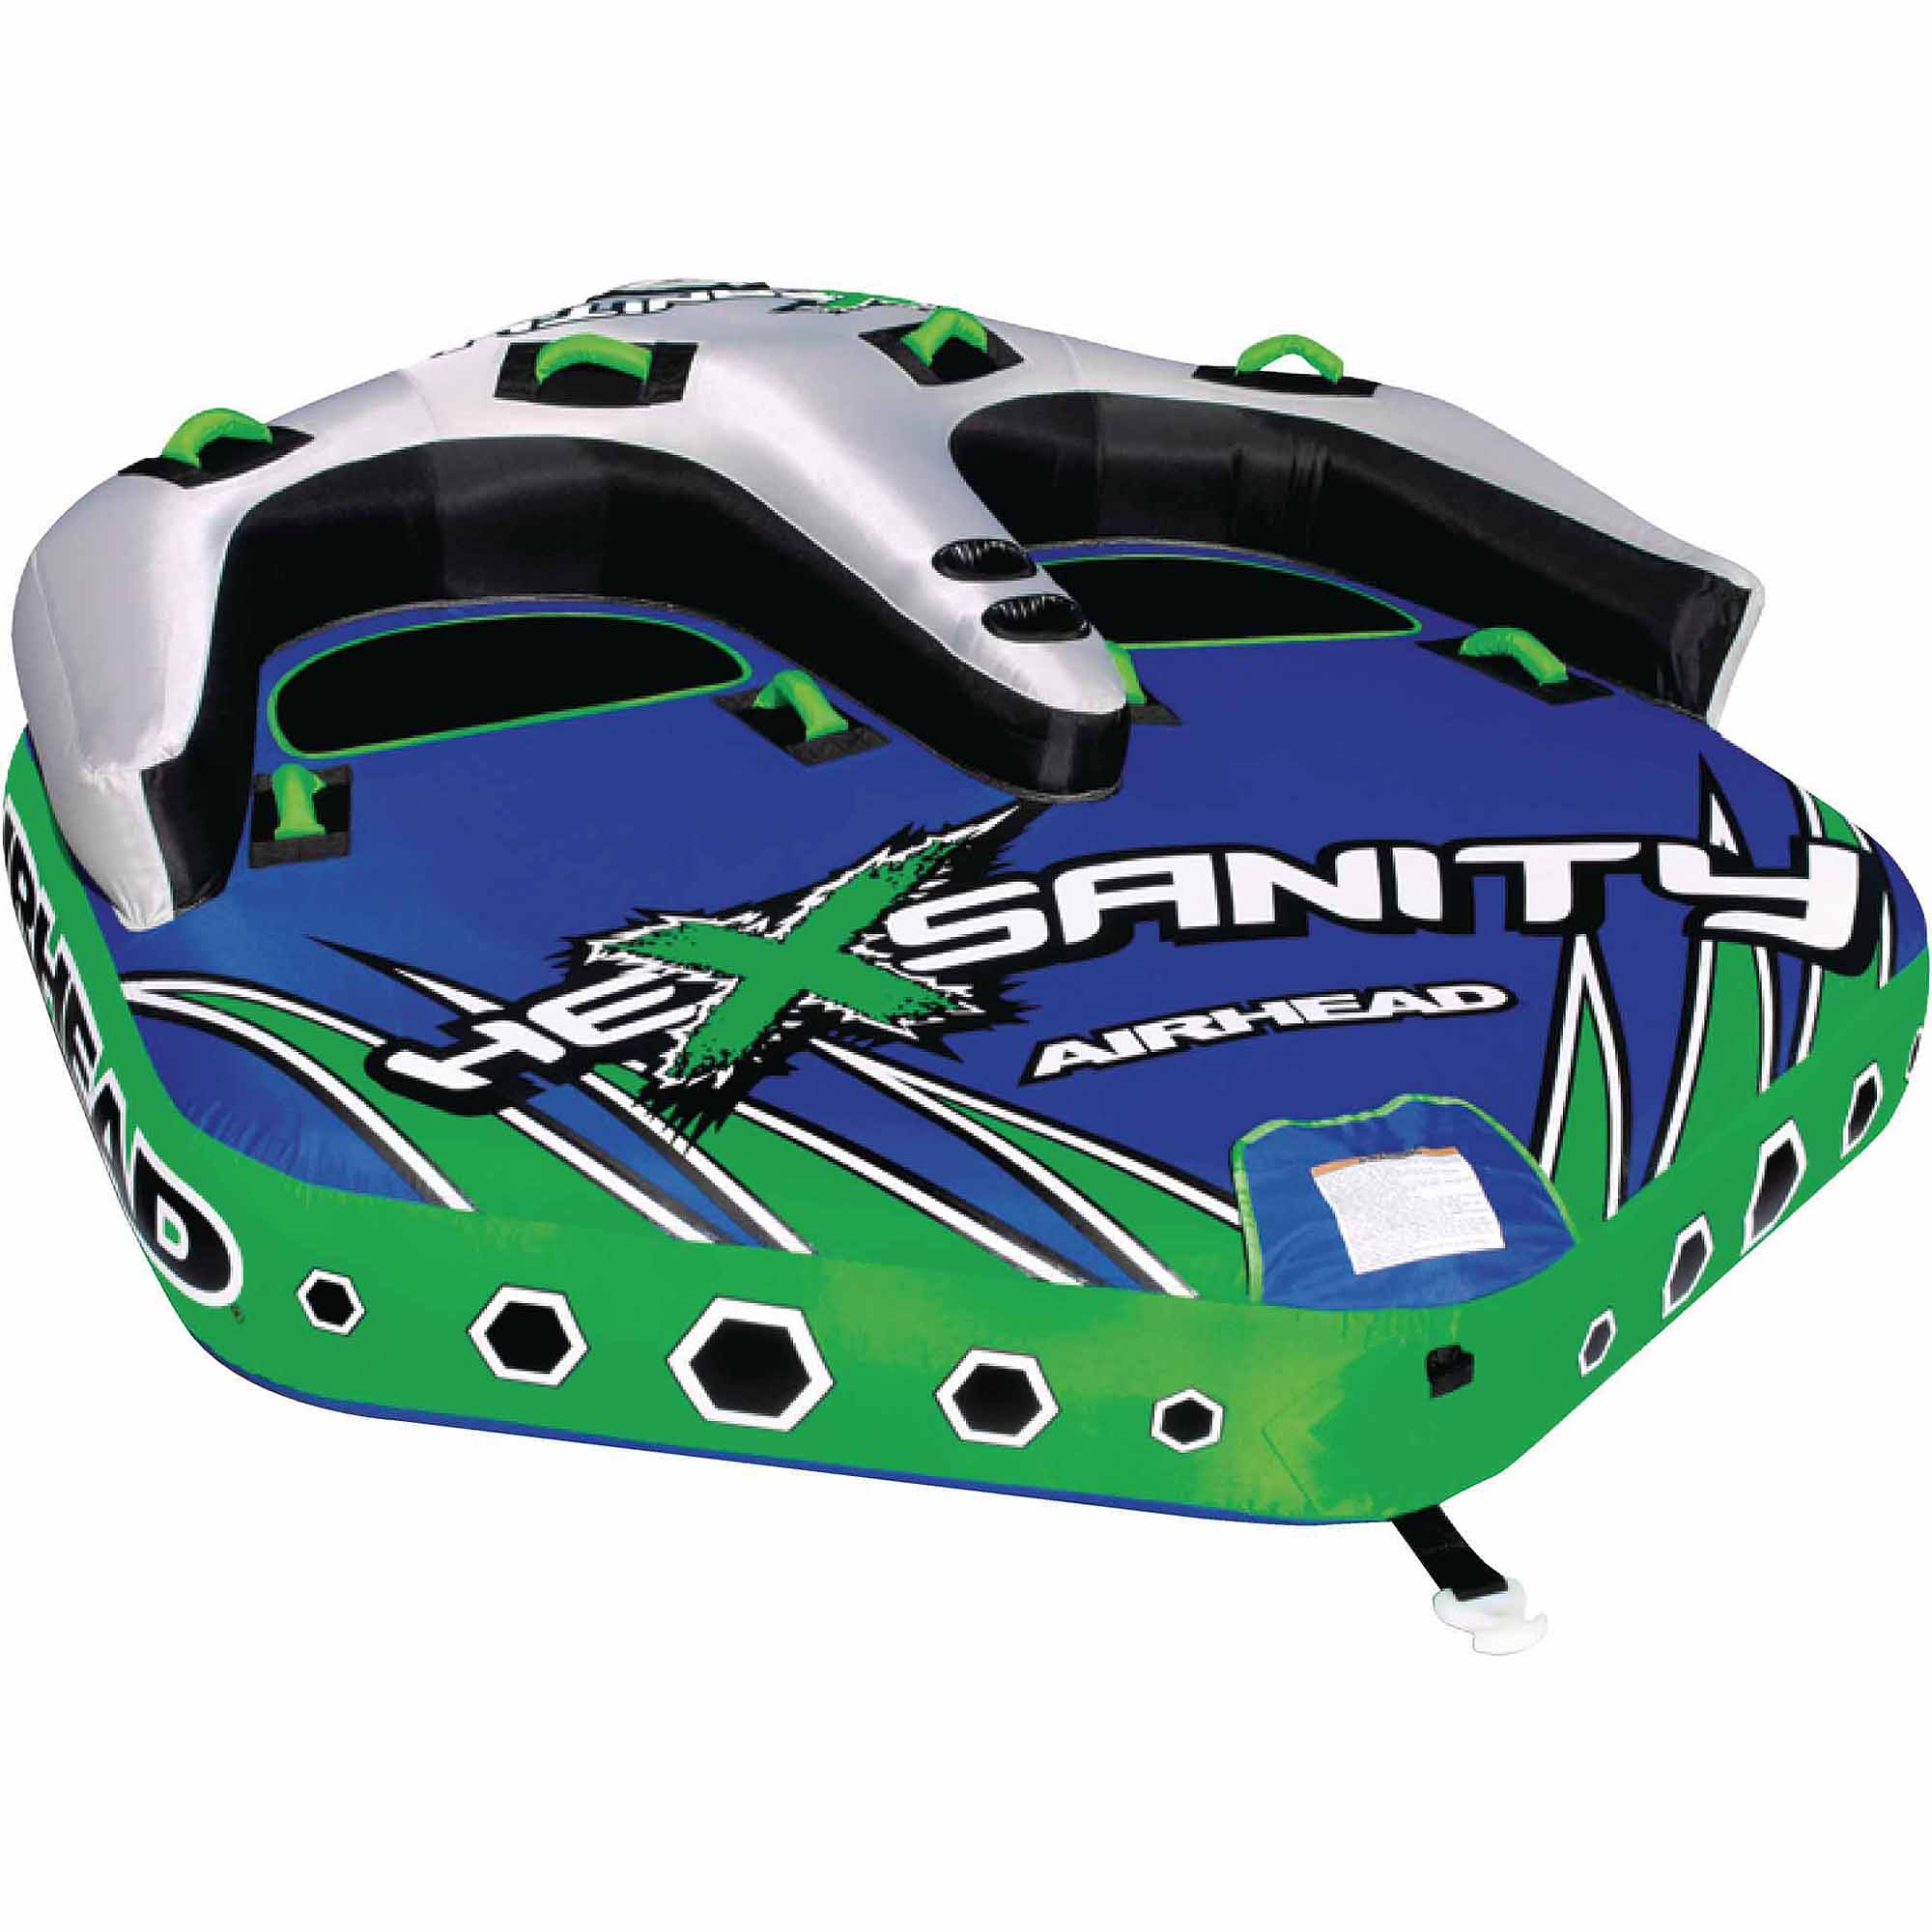 Airhead Hexsanity Inflatable Double Rider Towable by Kwik Tek